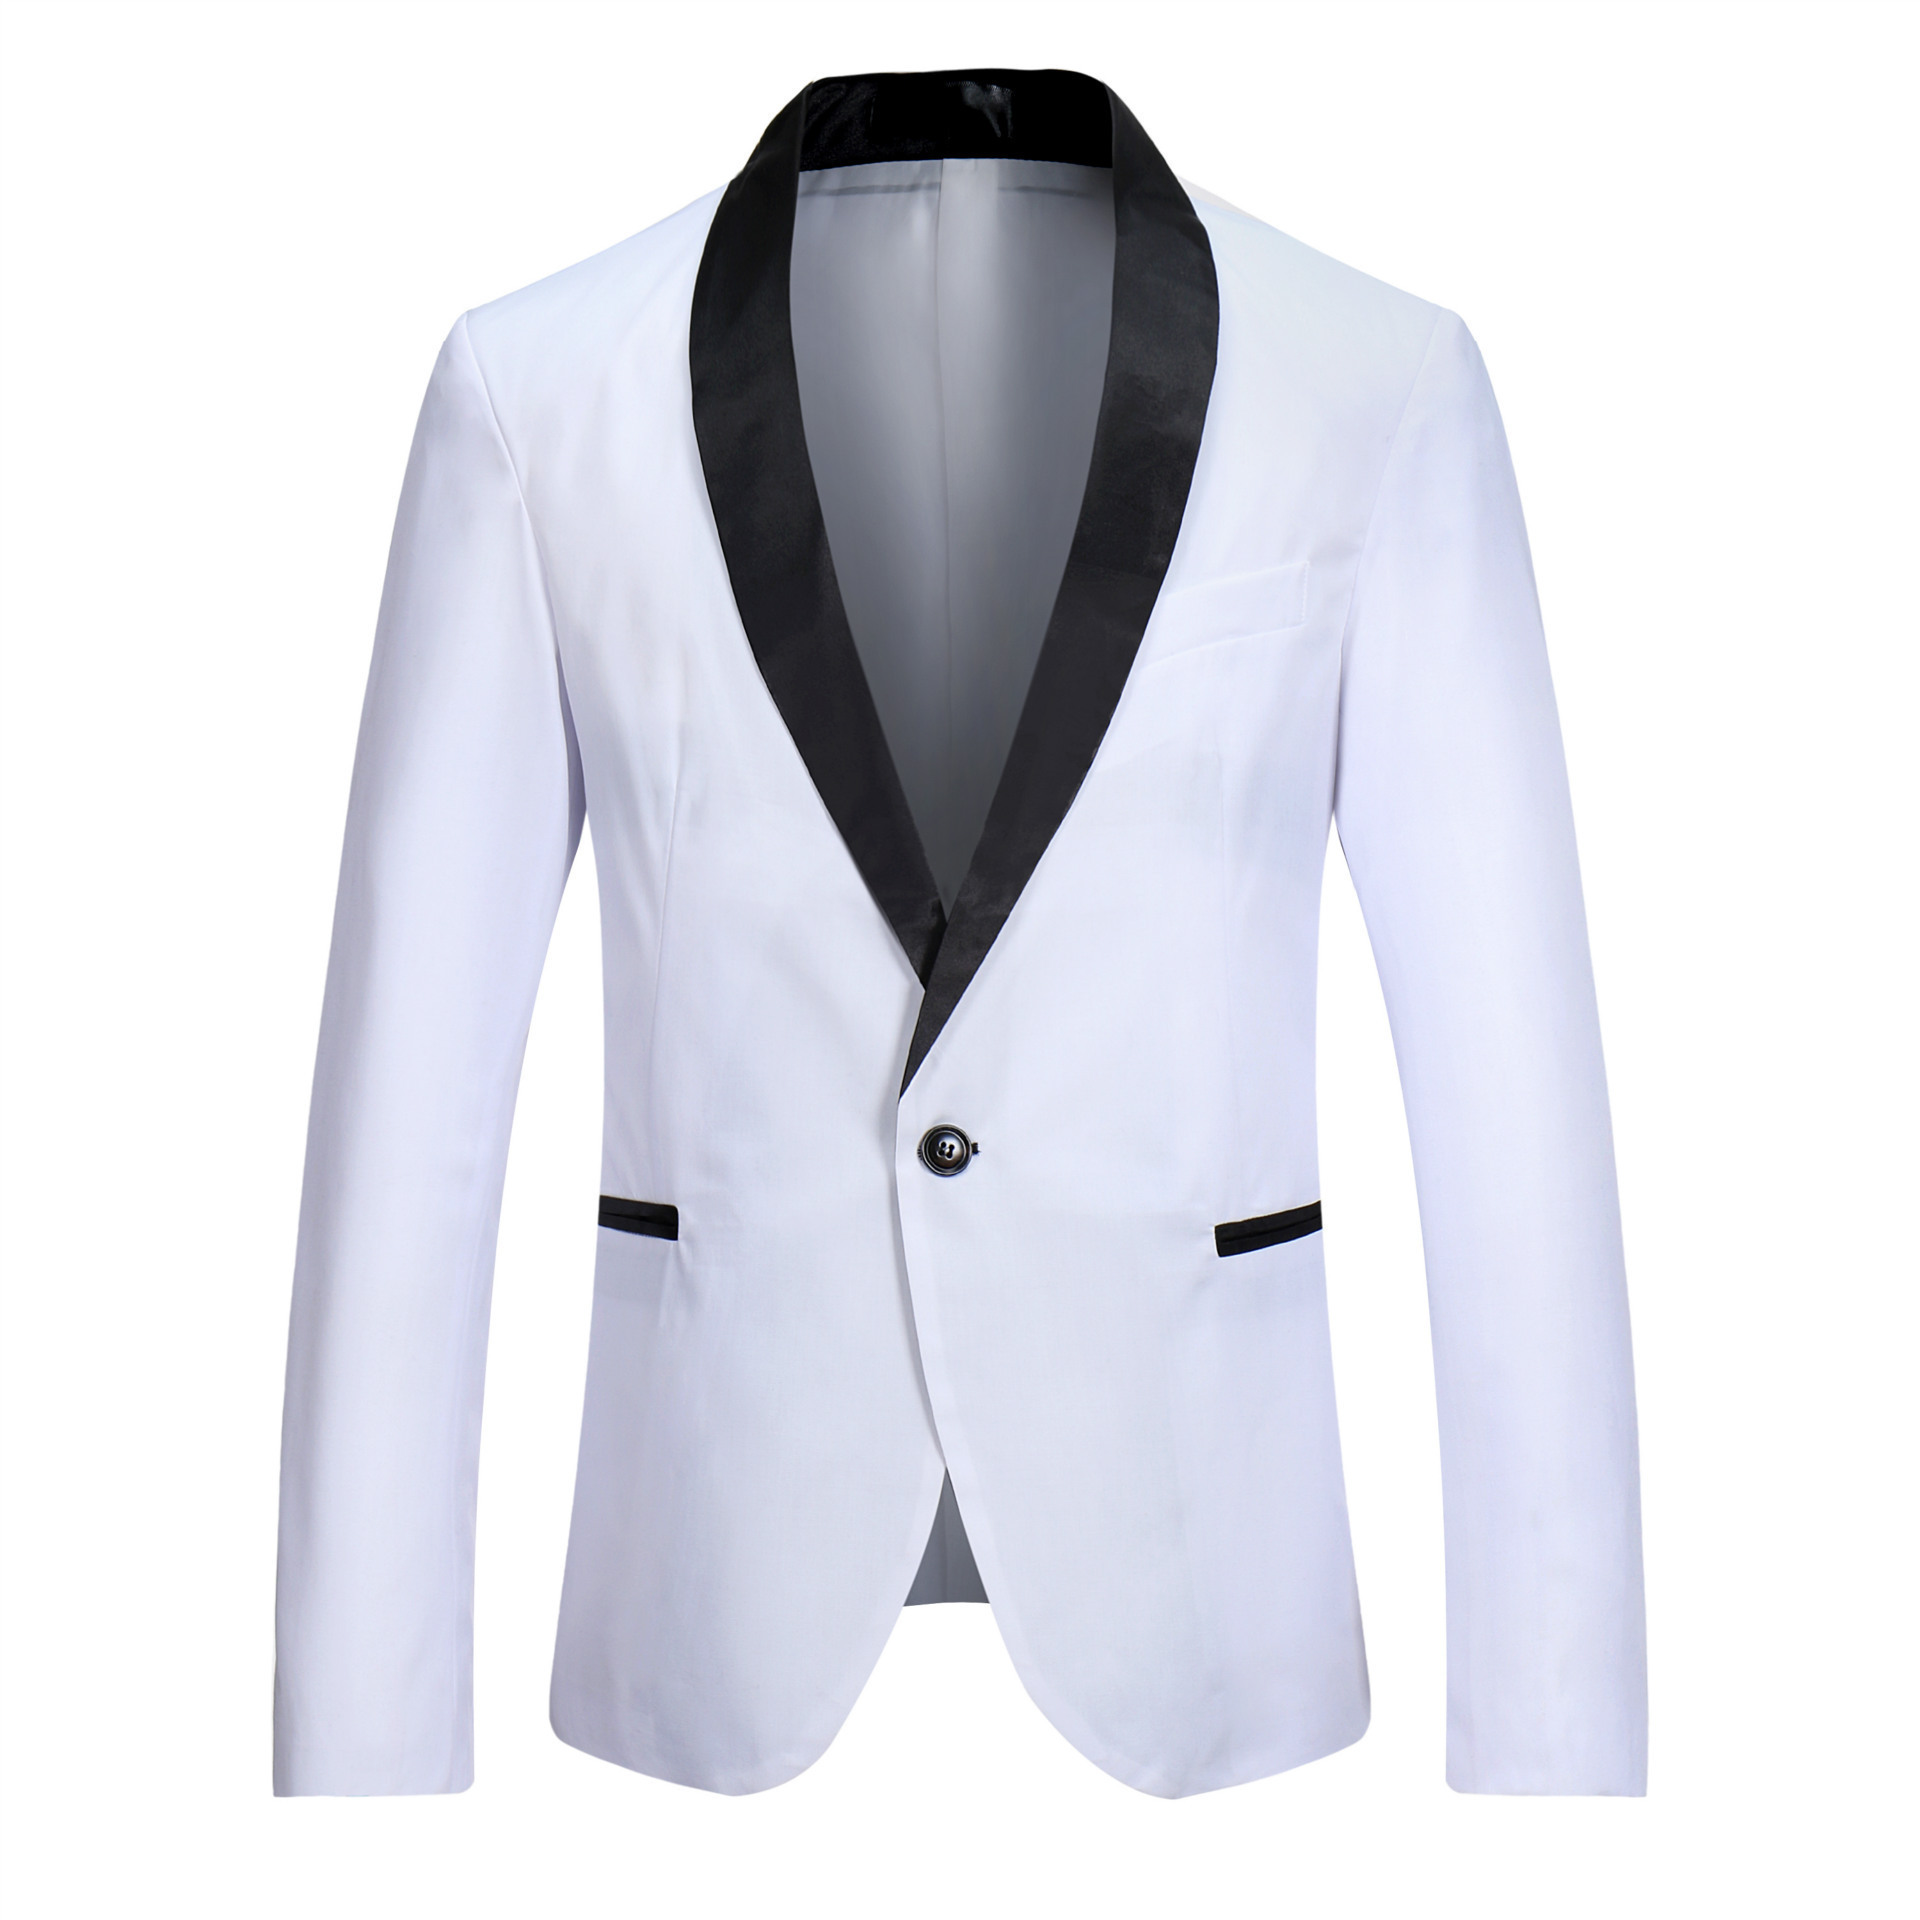 2020 New Style Fashion Simplicity Mixed Colors Groom Suit Men Casual Single Row Of A Buckle Bright Red Suit